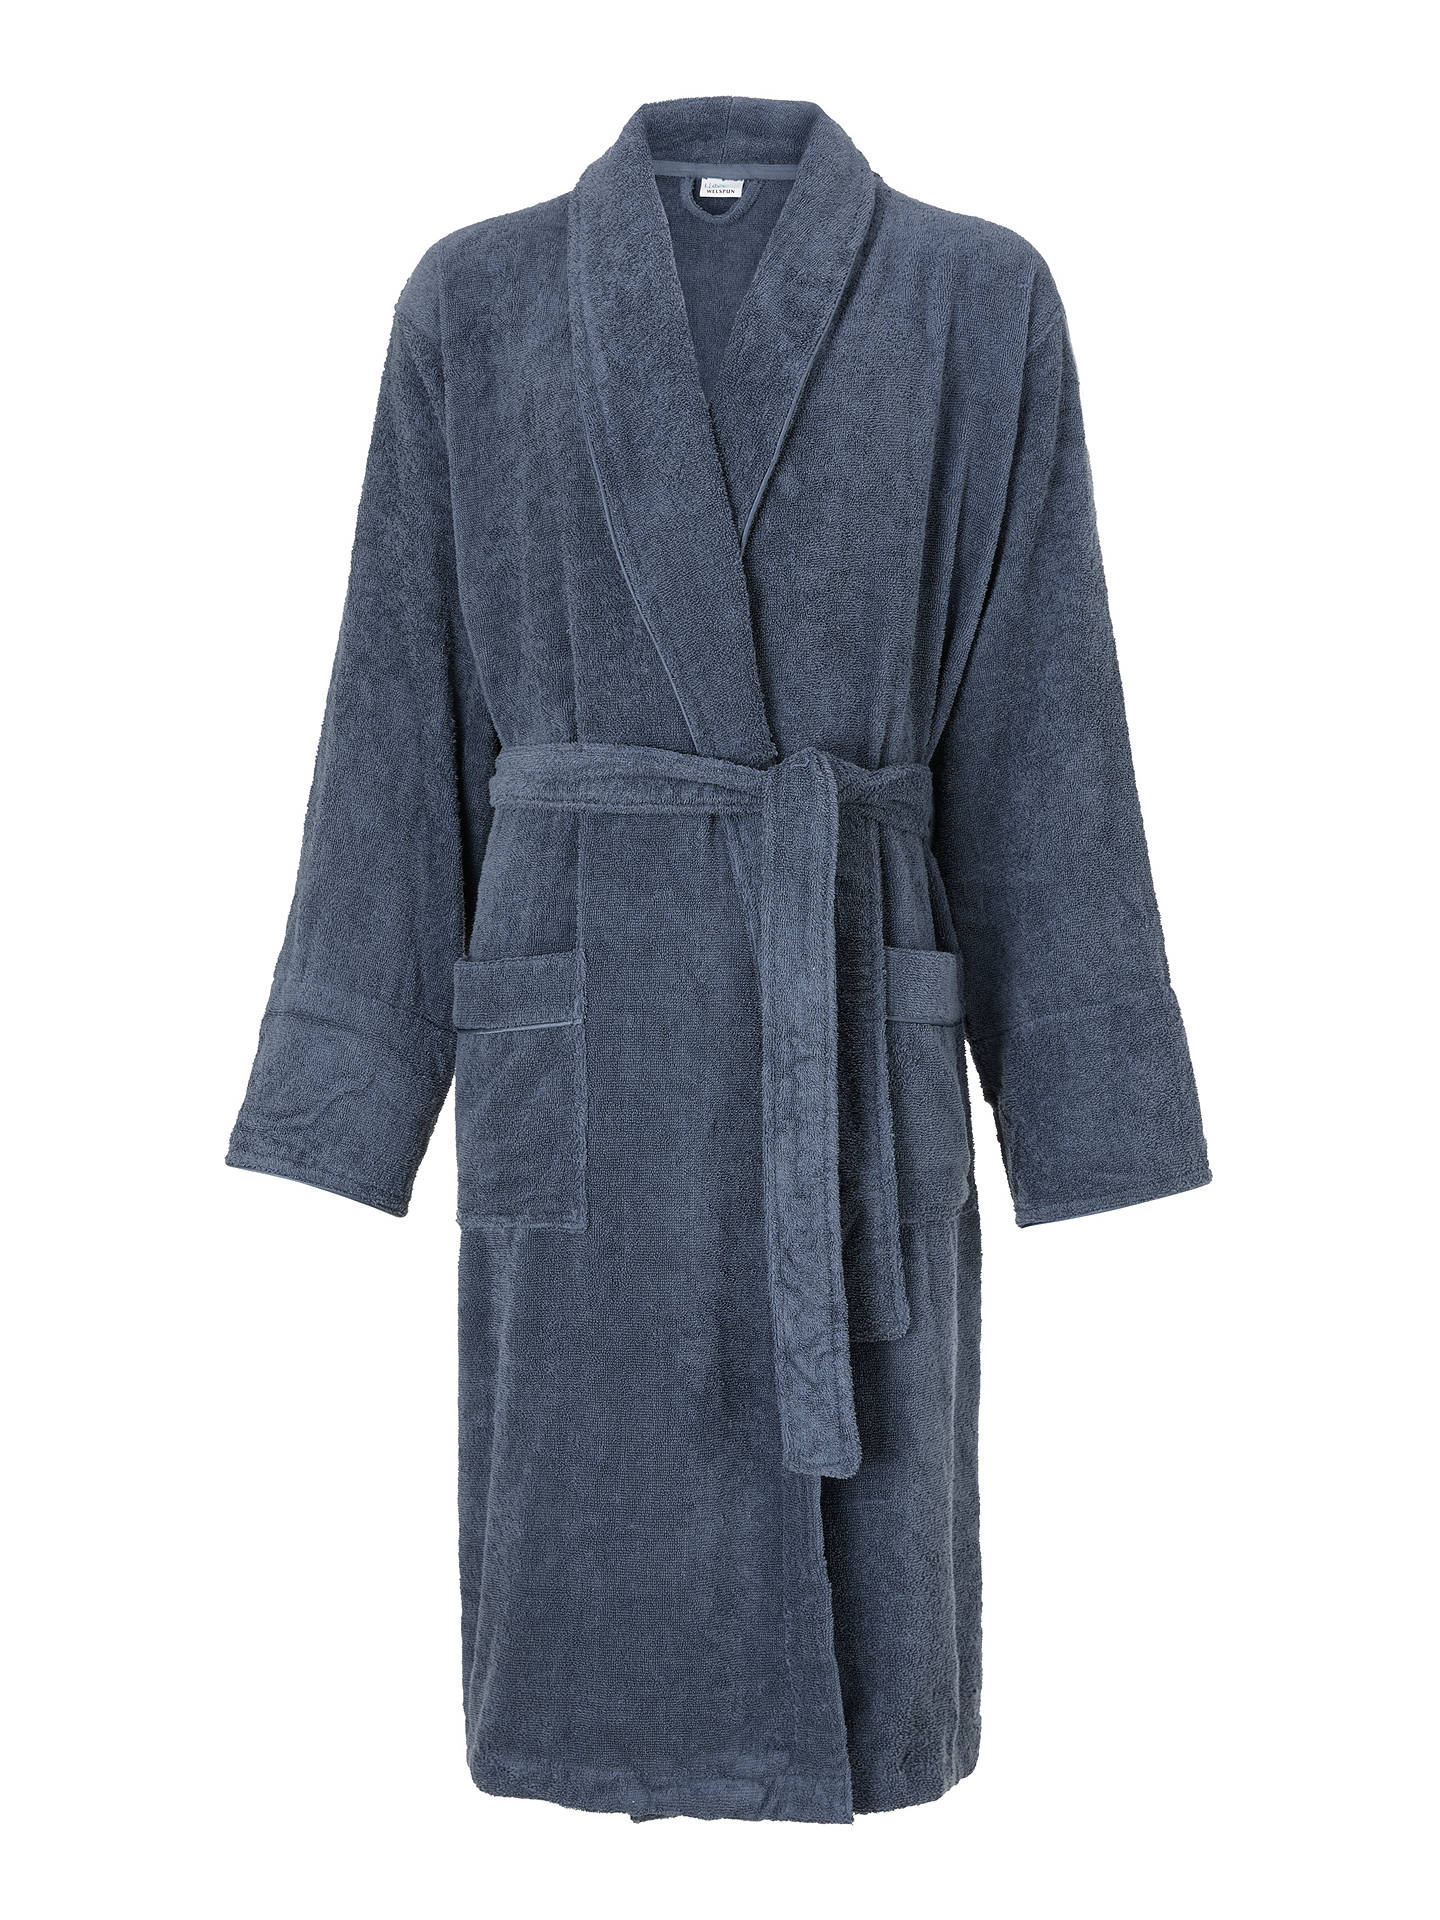 Buy John Lewis & Partners Silky Suvin Unisex Bath Robe, Blue, M/L Online at johnlewis.com